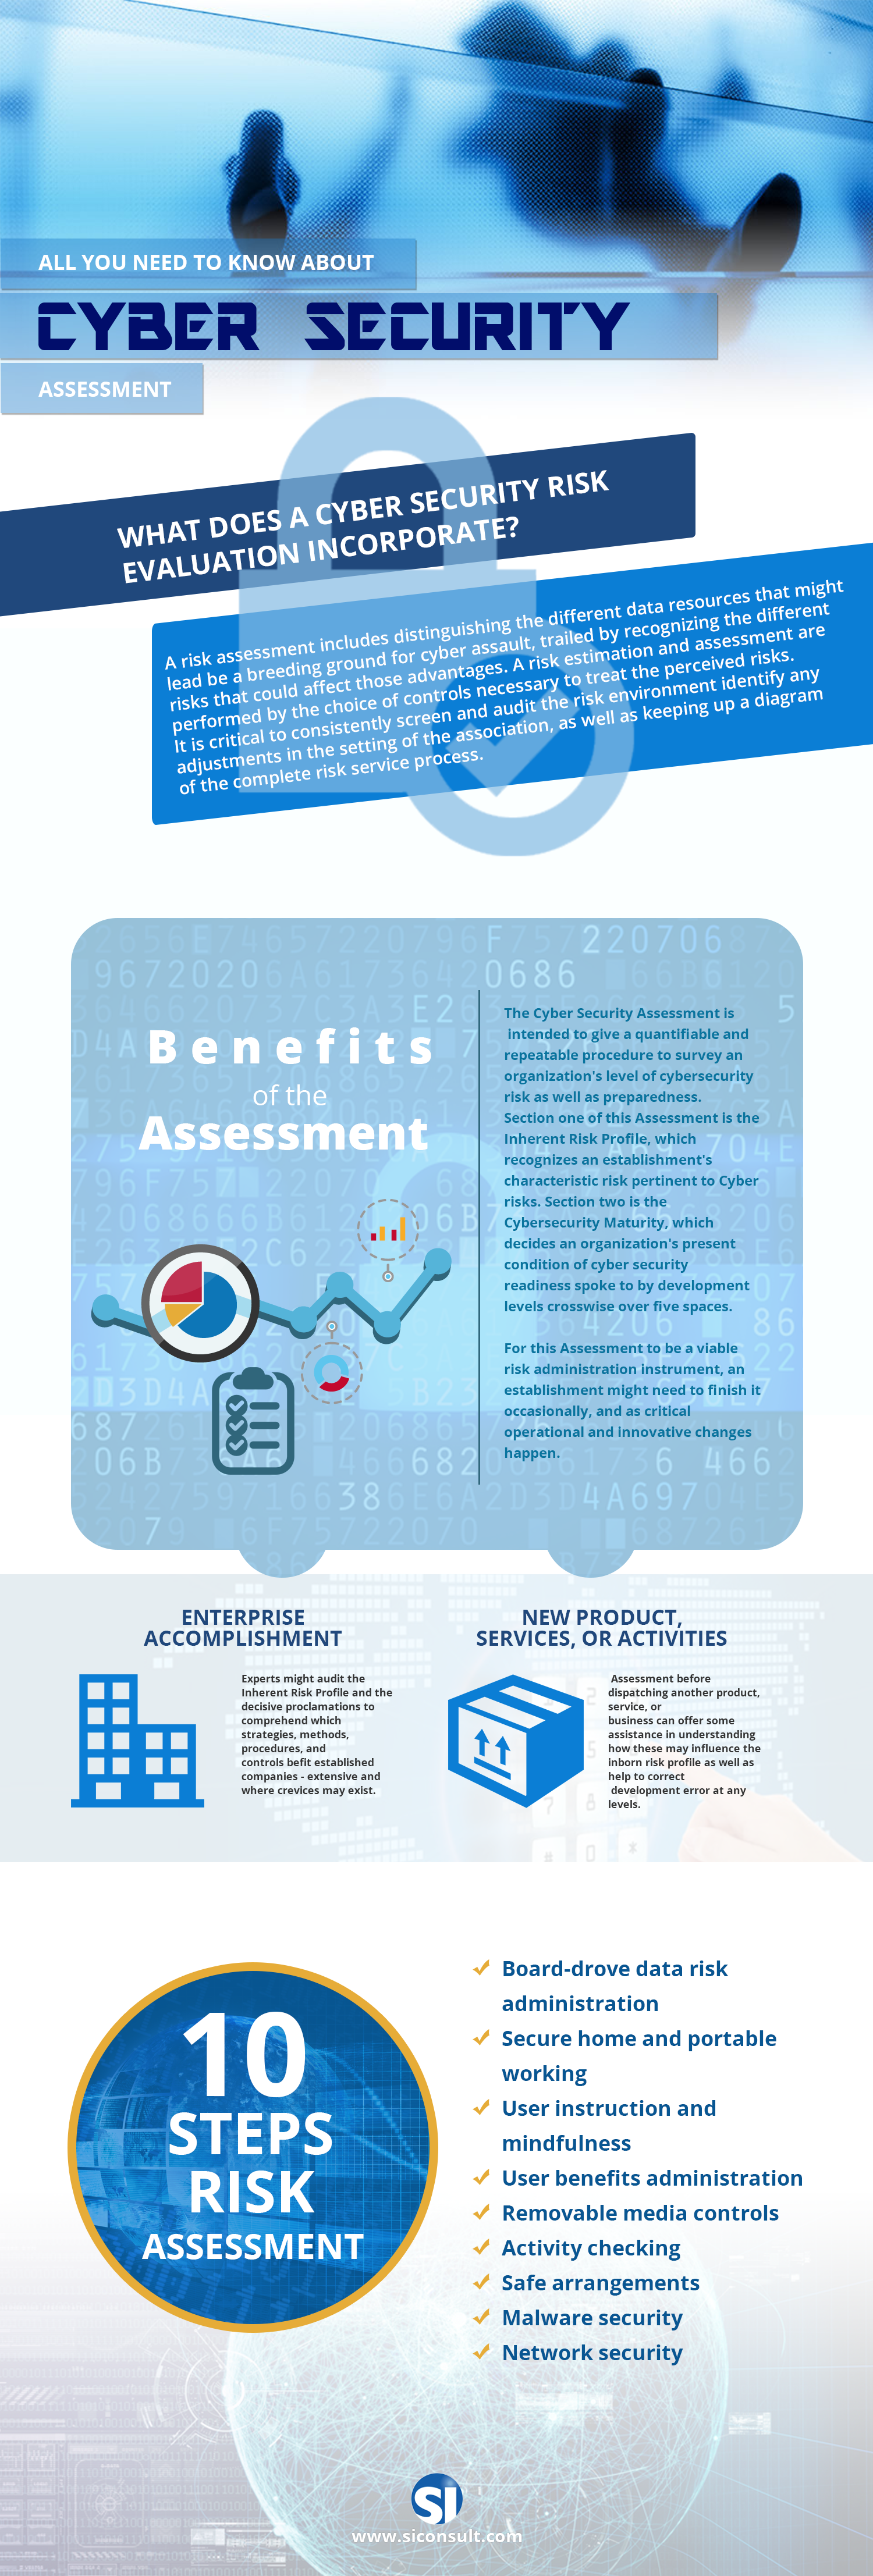 All You Need to Know About Cyber Security Assessment Infographic